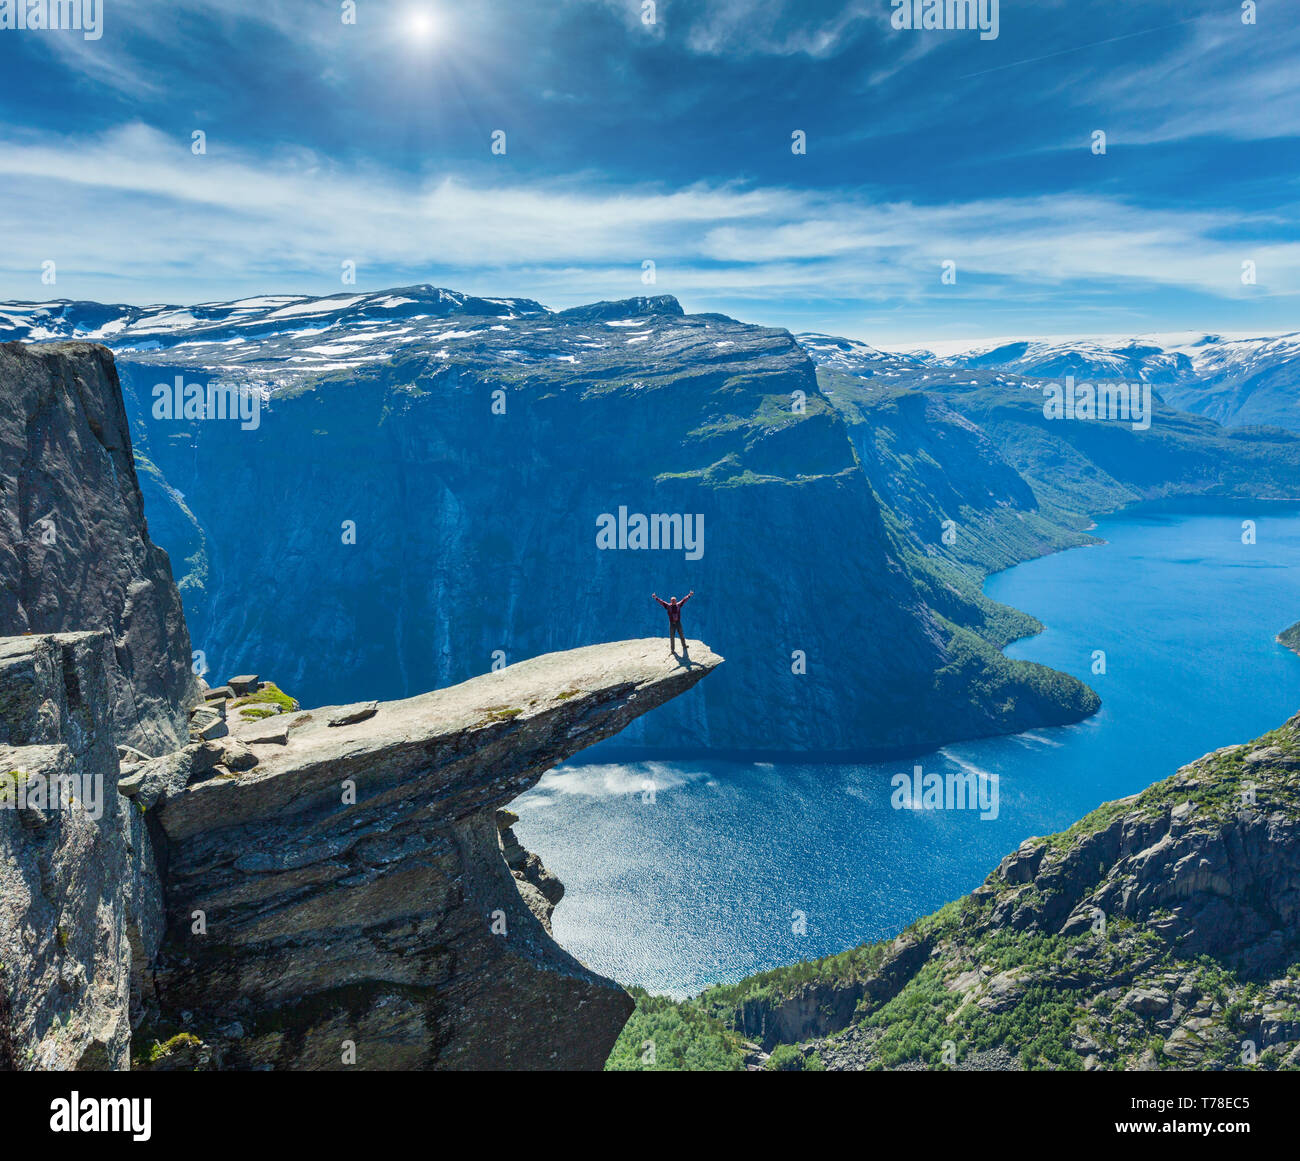 The summer sunshiny view of Trolltunga (famous The Troll's tongue Norvegian destination) and Ringedalsvatnet lake in Odda, Roldal, Norway. Man tourist - Stock Image